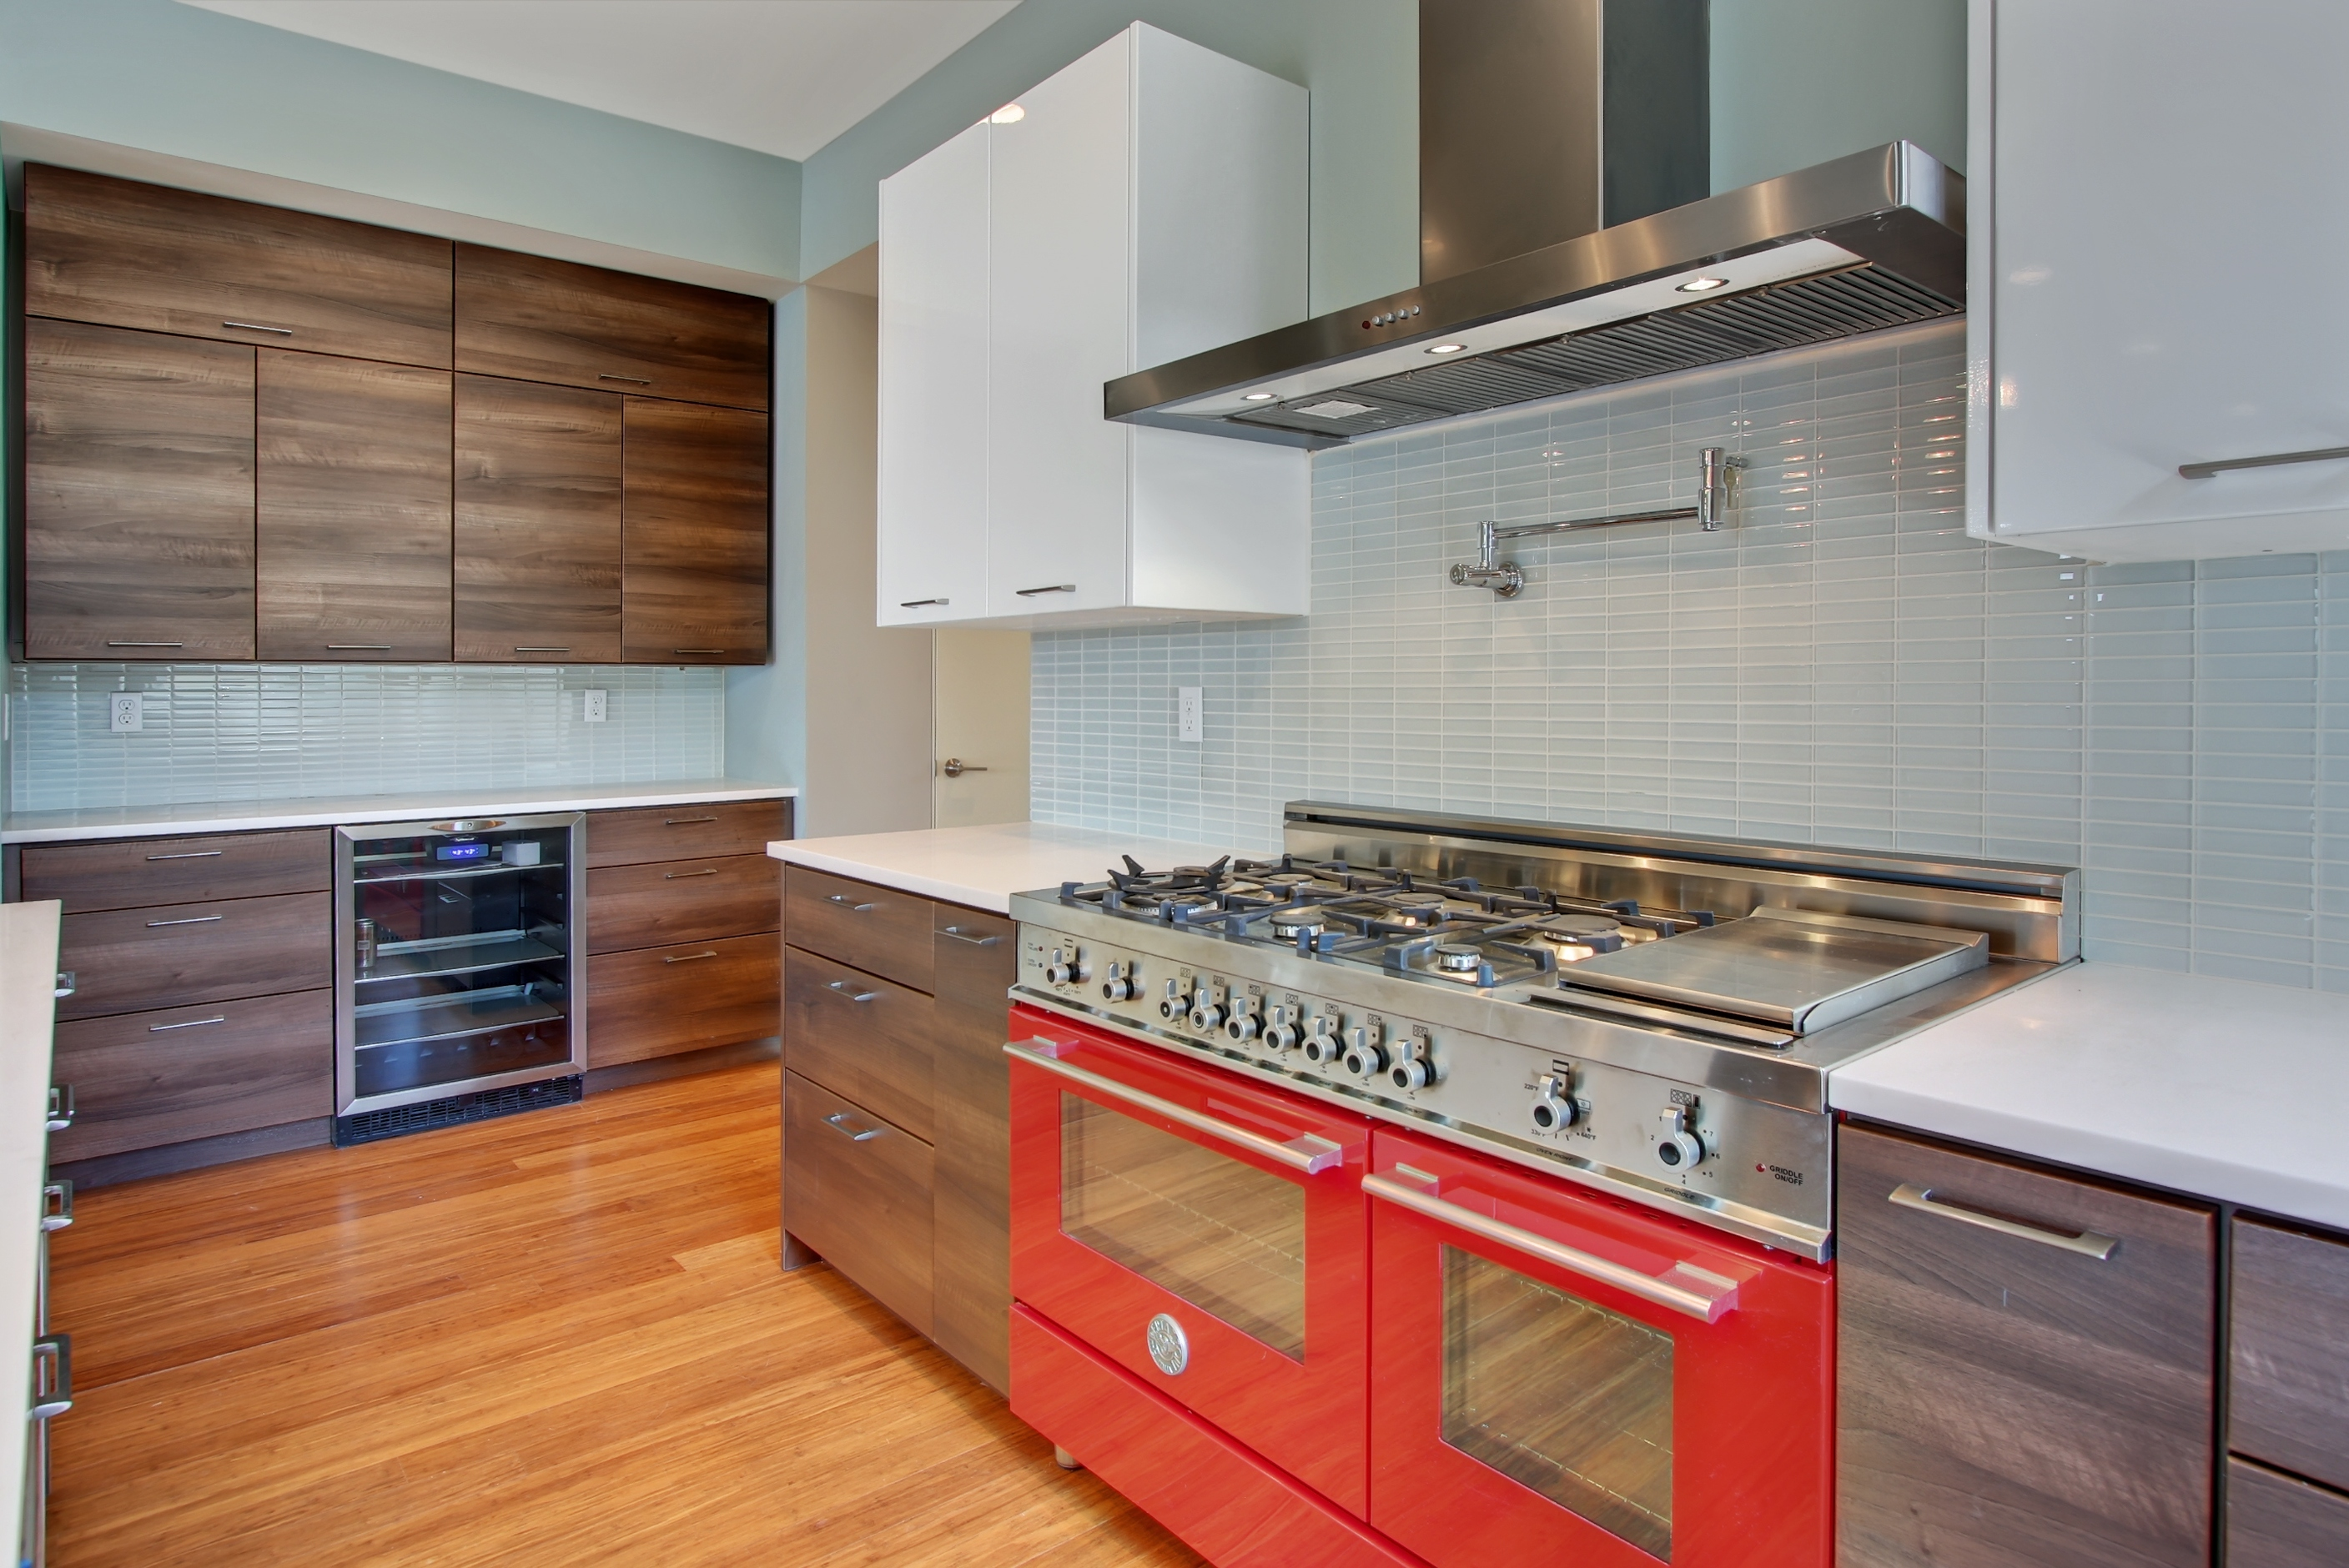 Kitchen Ranges And Ovens ~ Homethangs introduces a tip sheet to choosing new